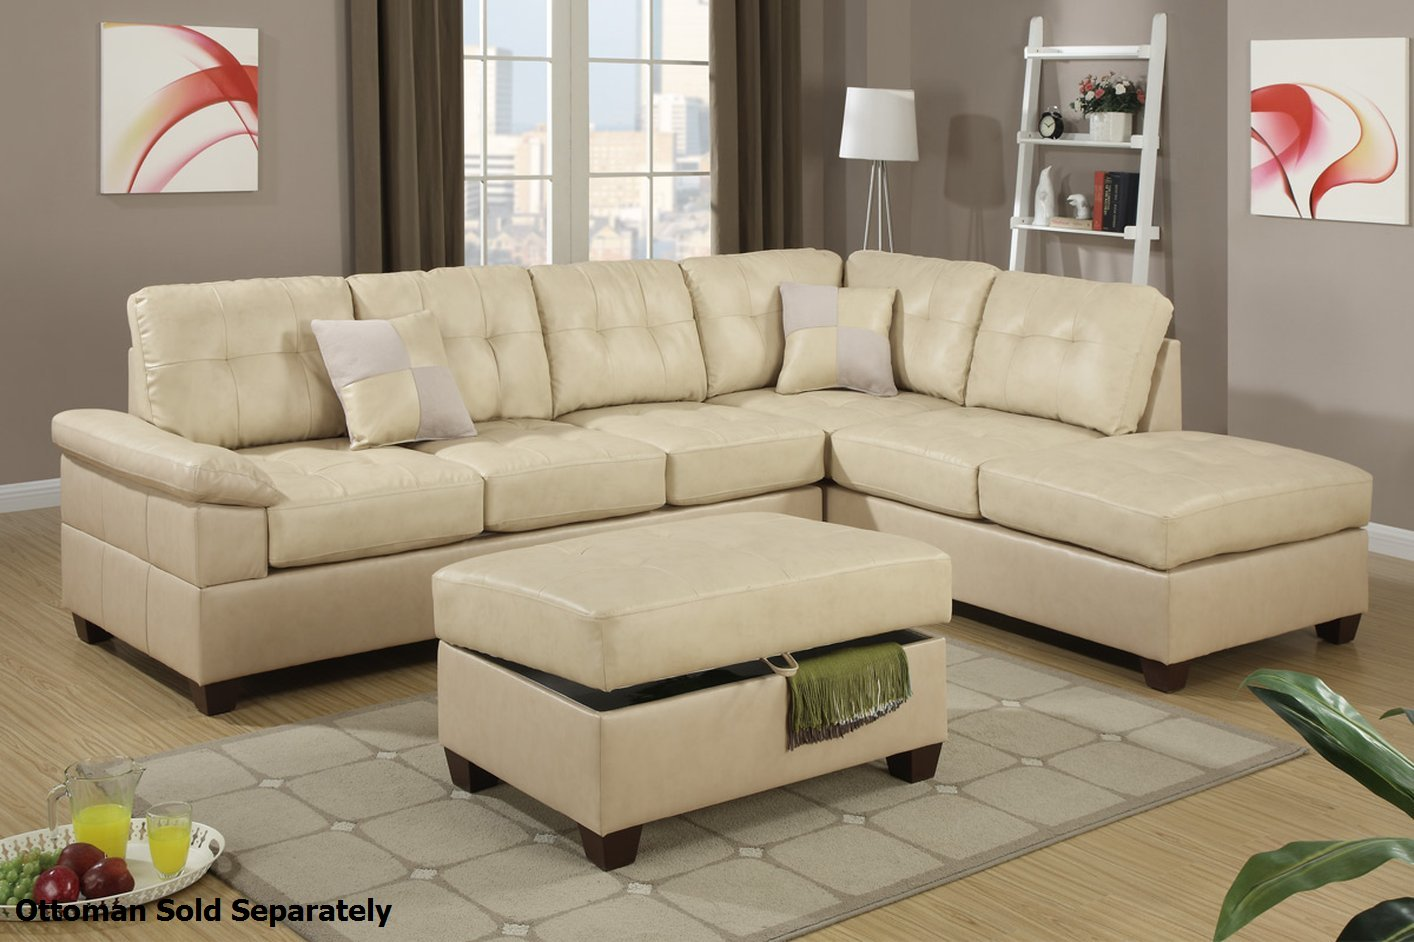 Poundex reese f7520 beige leather sectional sofa steal a for Leather sectional sofa